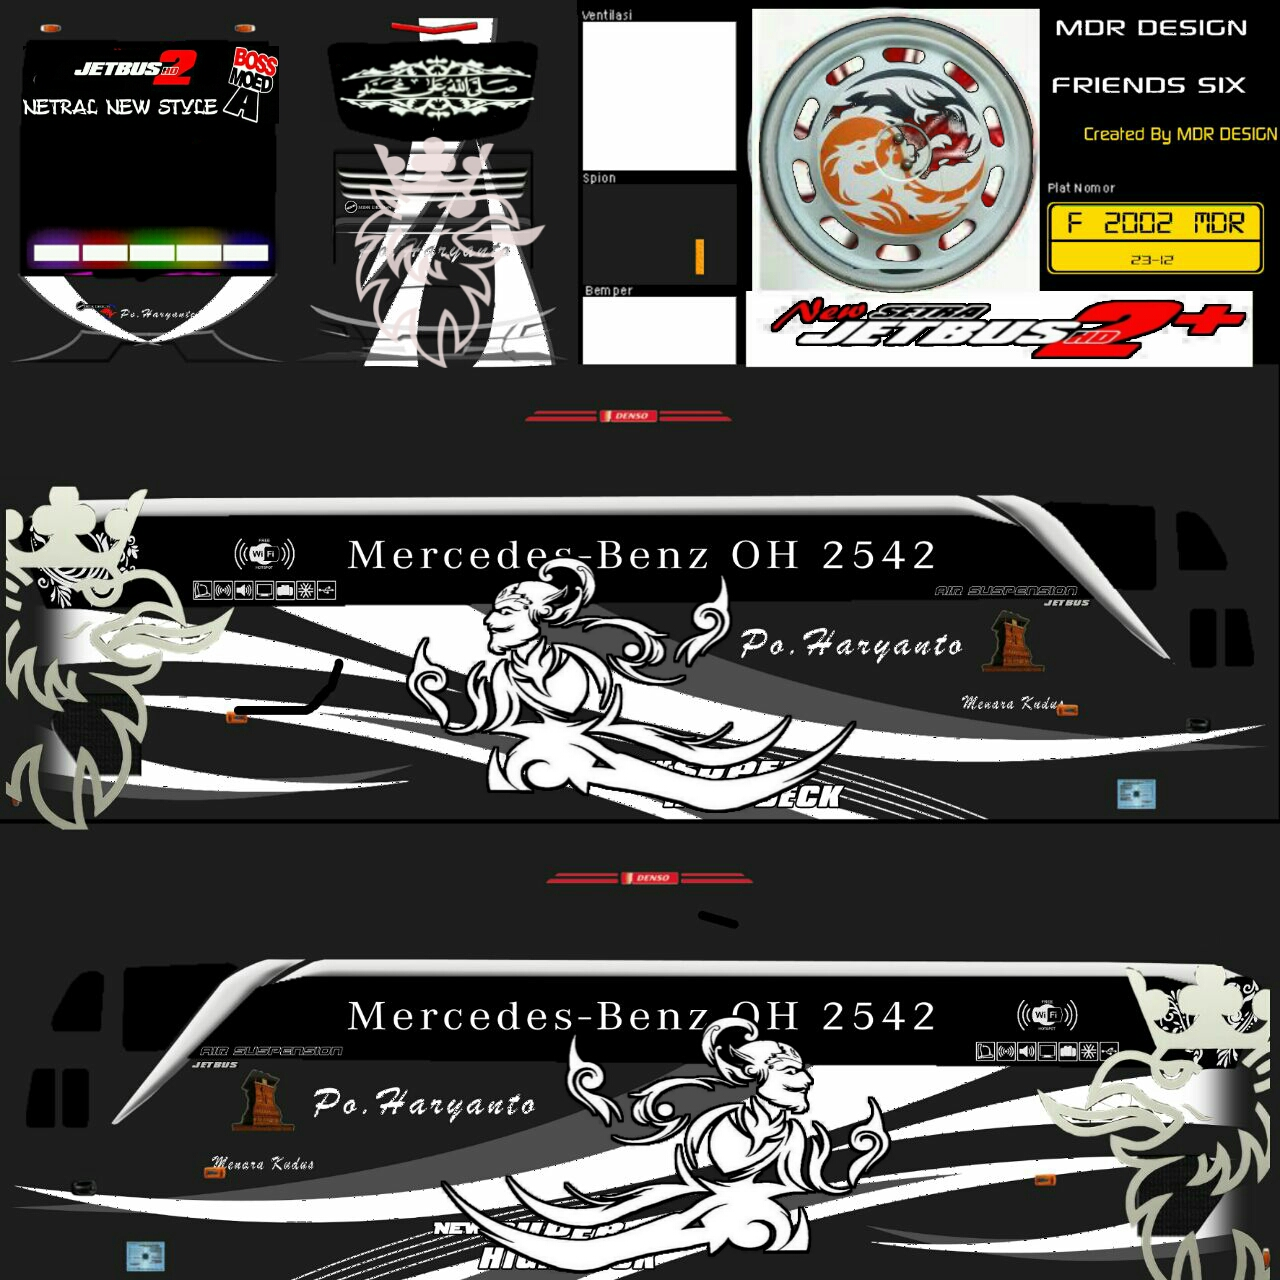 Selecting the correct version will make the kumpulan stiker bussid game work better, faster, use less battery power. livery bus po handoyo livery bus